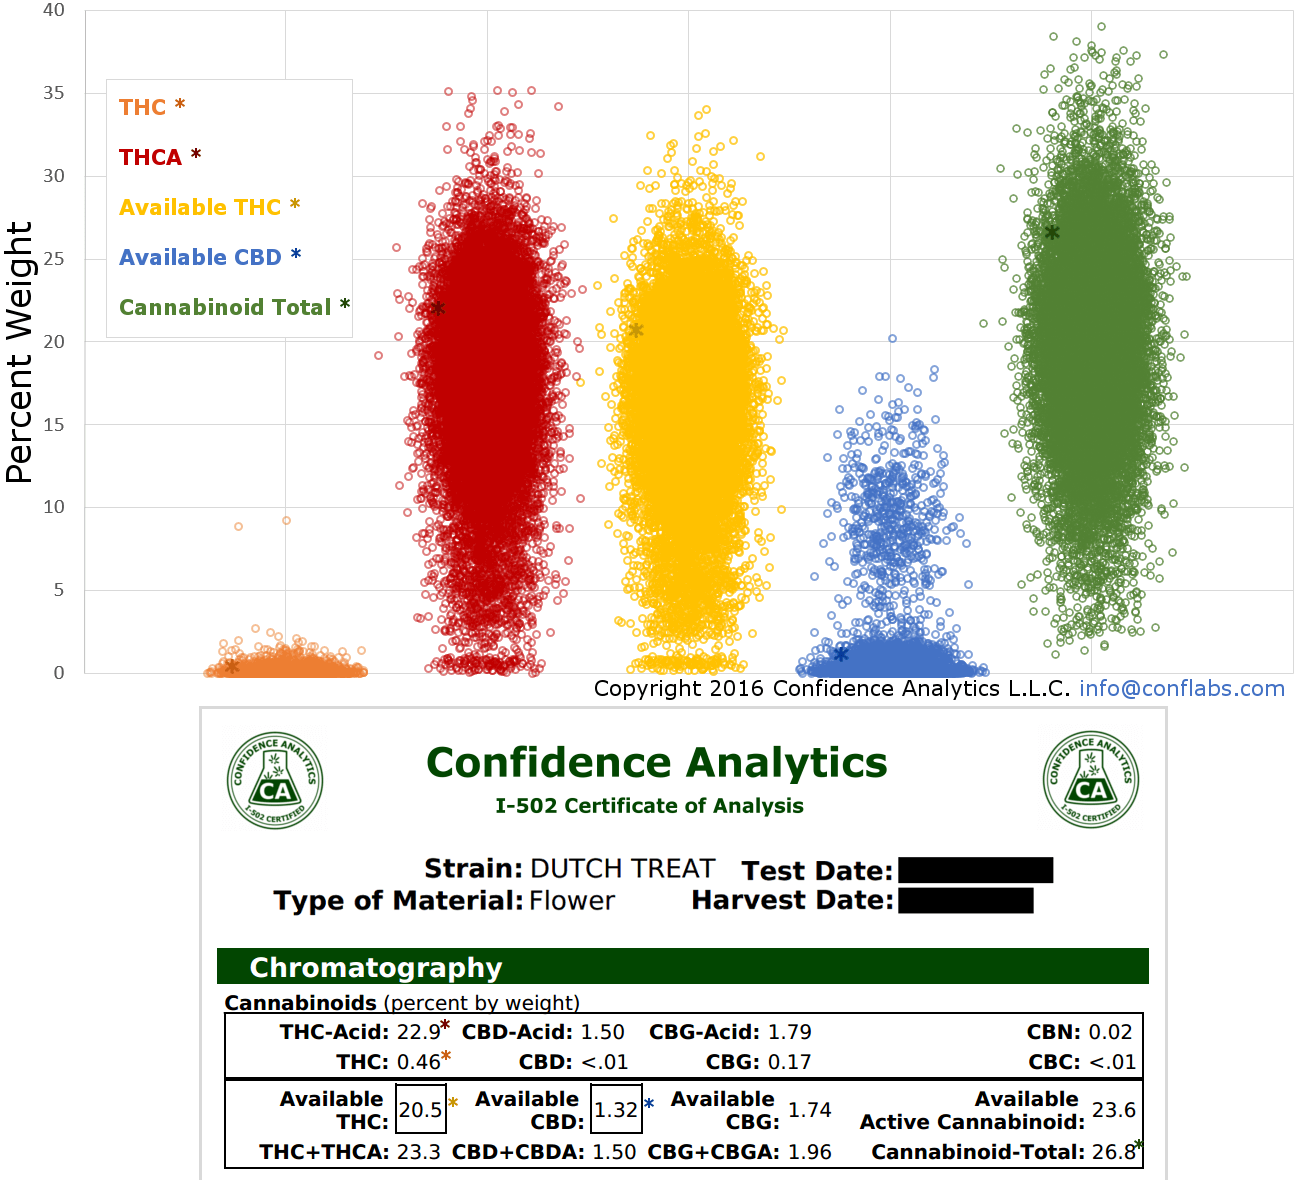 cannabinoid total compared to individual cannabinoids confidence